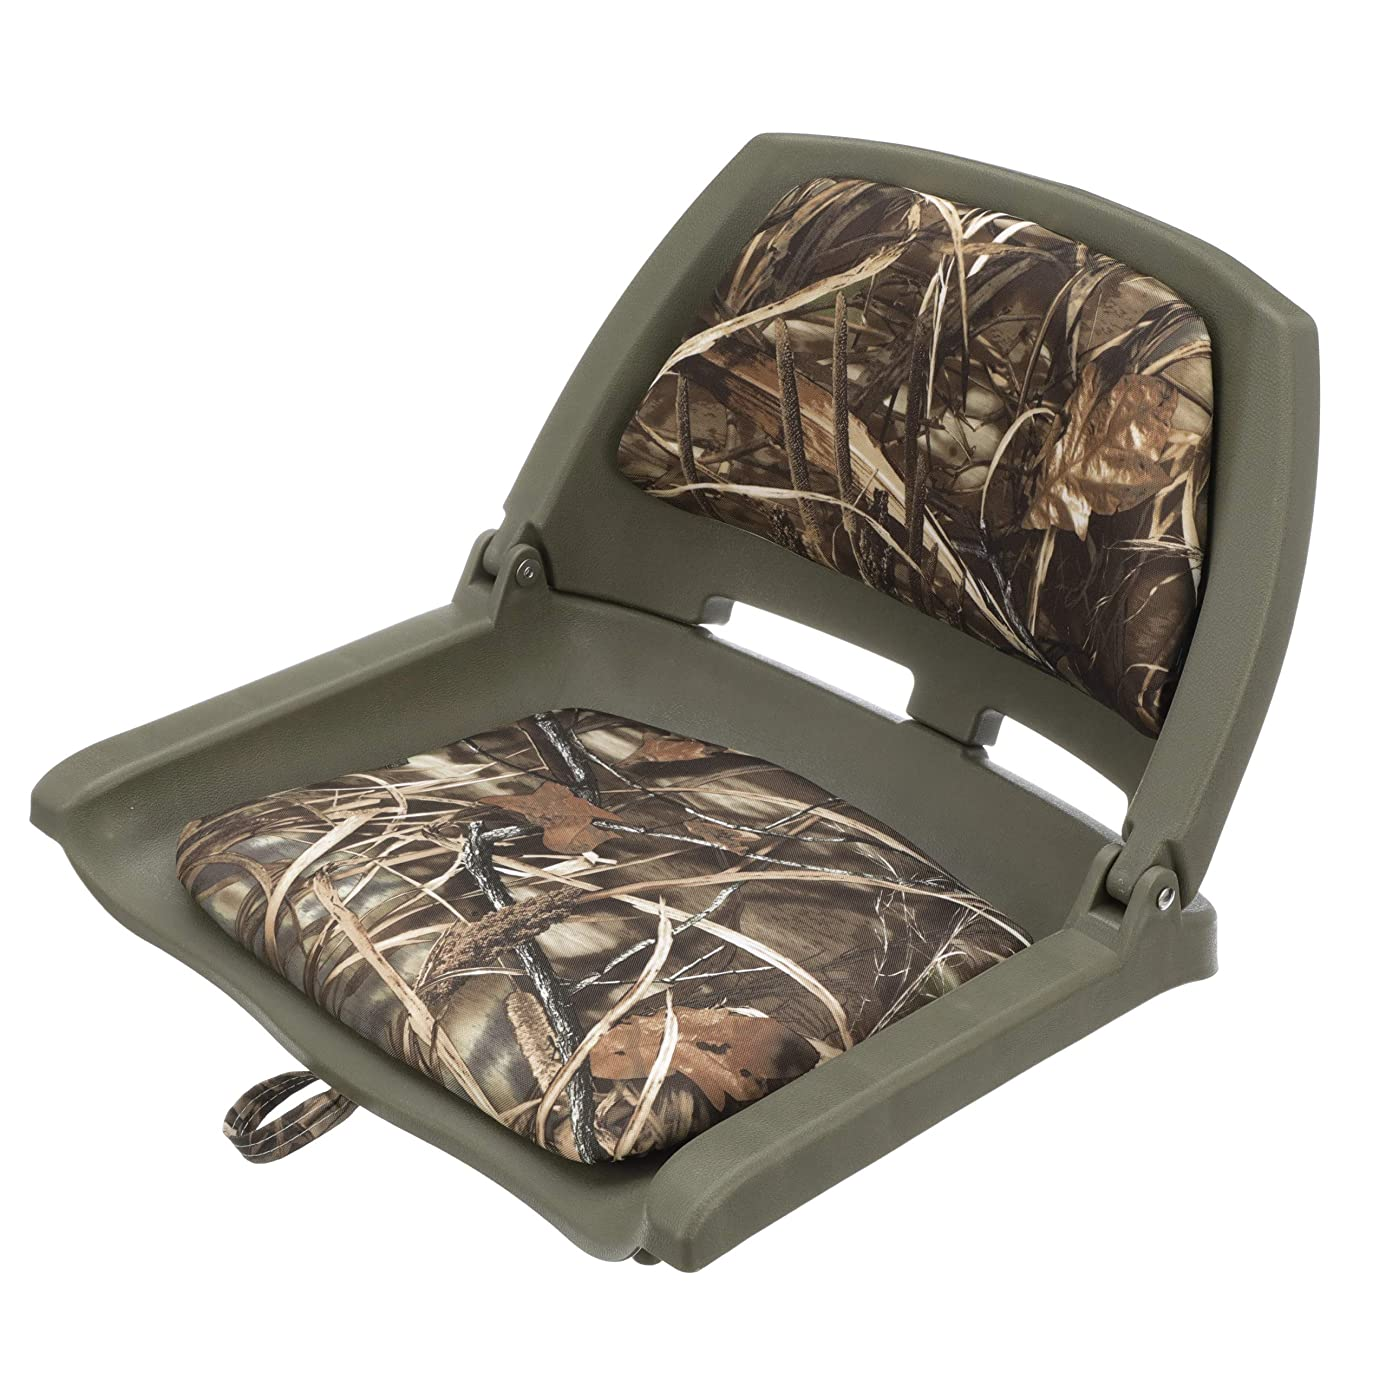 Attwood 98391GNMX Padded Boat Seat, Camouflage, Molded Plastic Frame